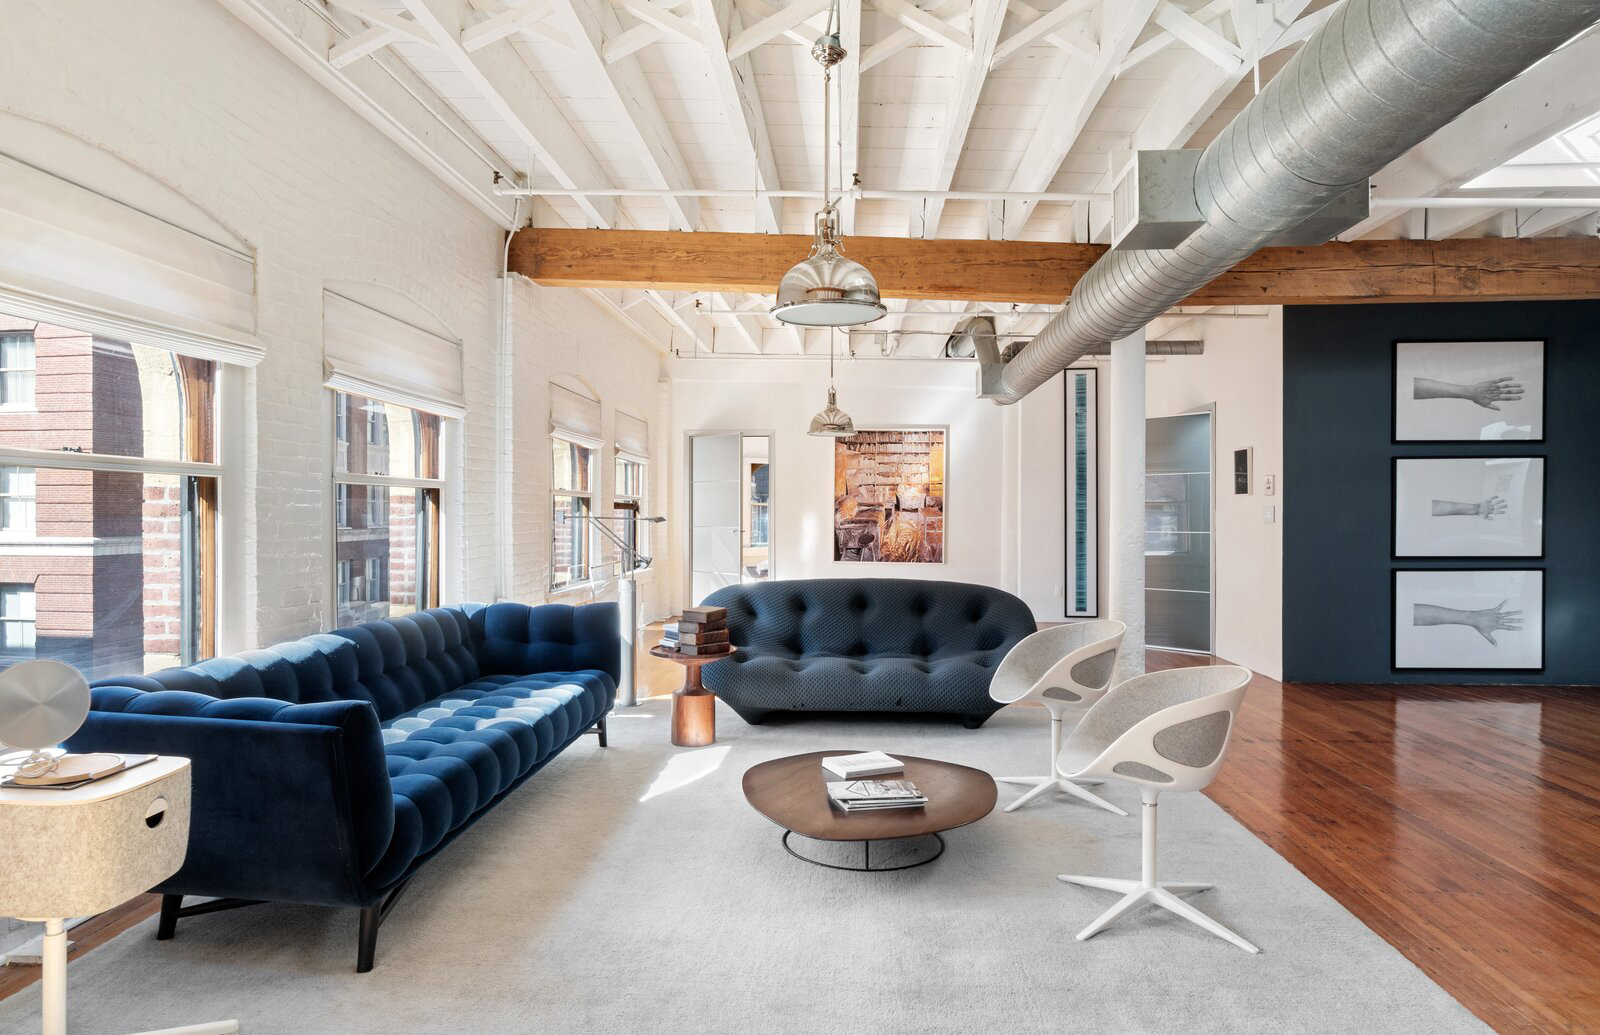 Loft-living gets a New England spin a this Boston penthouse apartment which takes over the entire top floor of a converted warehouse in the city's Leather District.